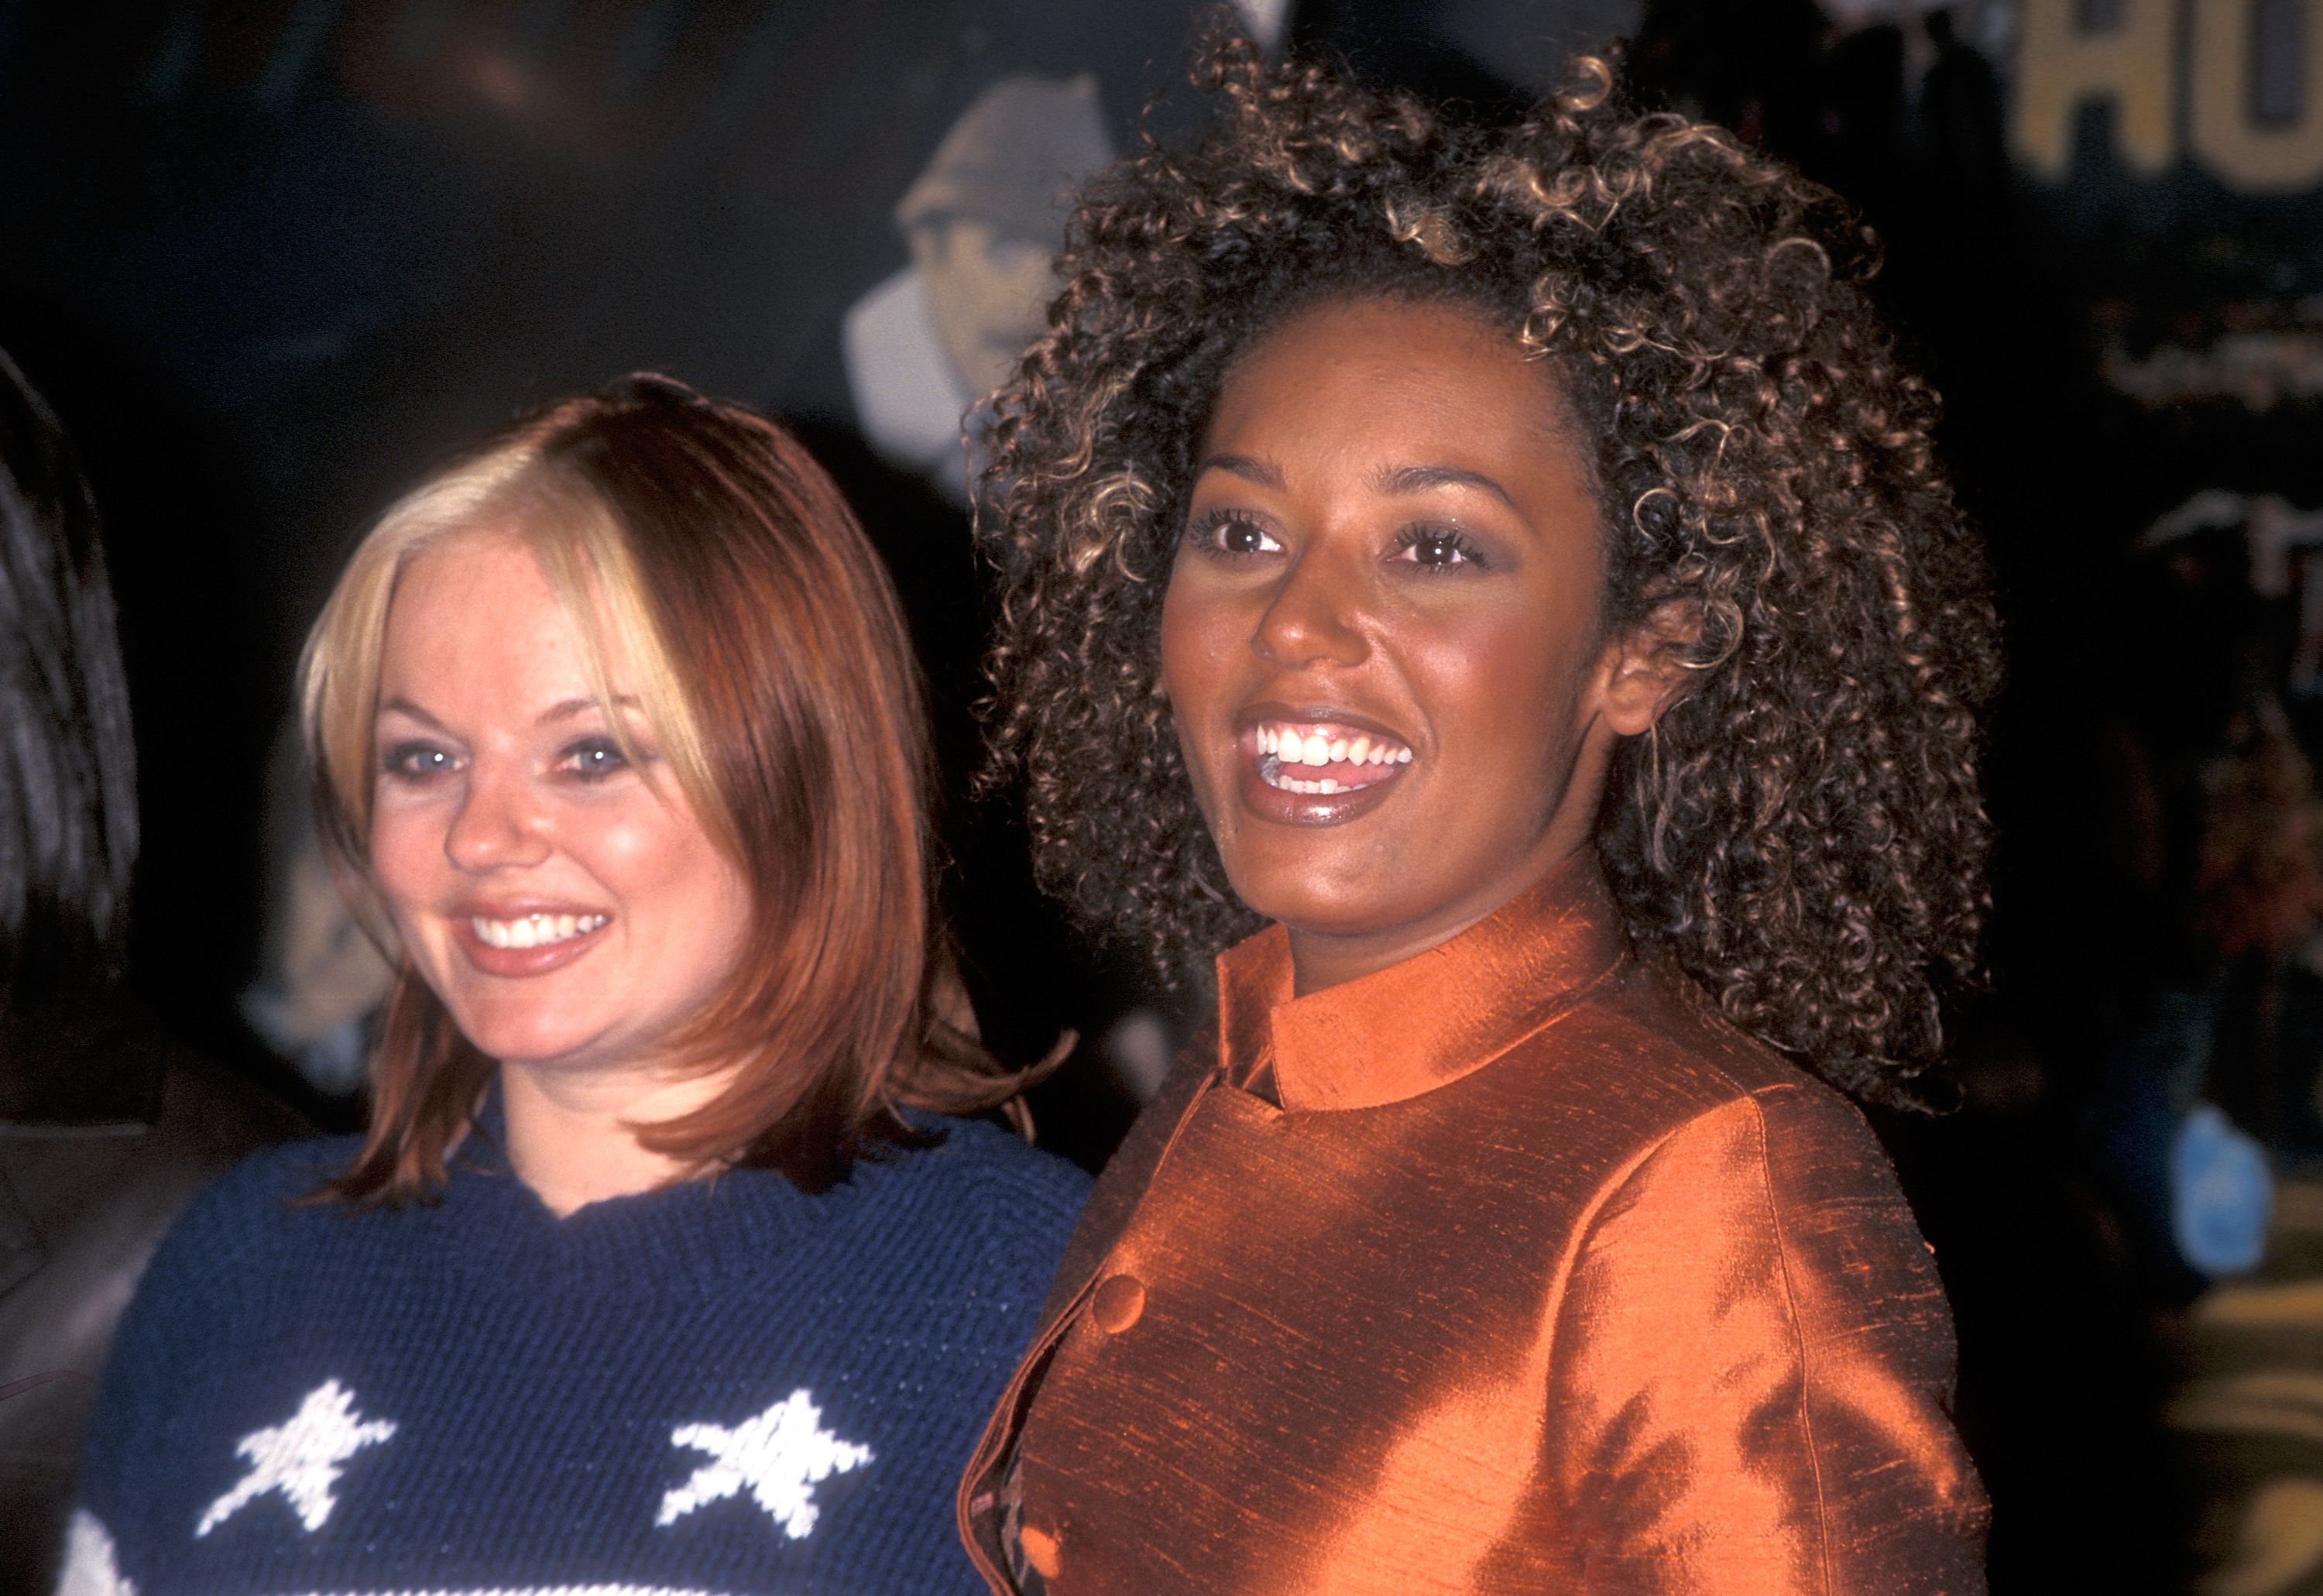 Mel B claims she and Geri Horner had sex at height of Spice Girls fame